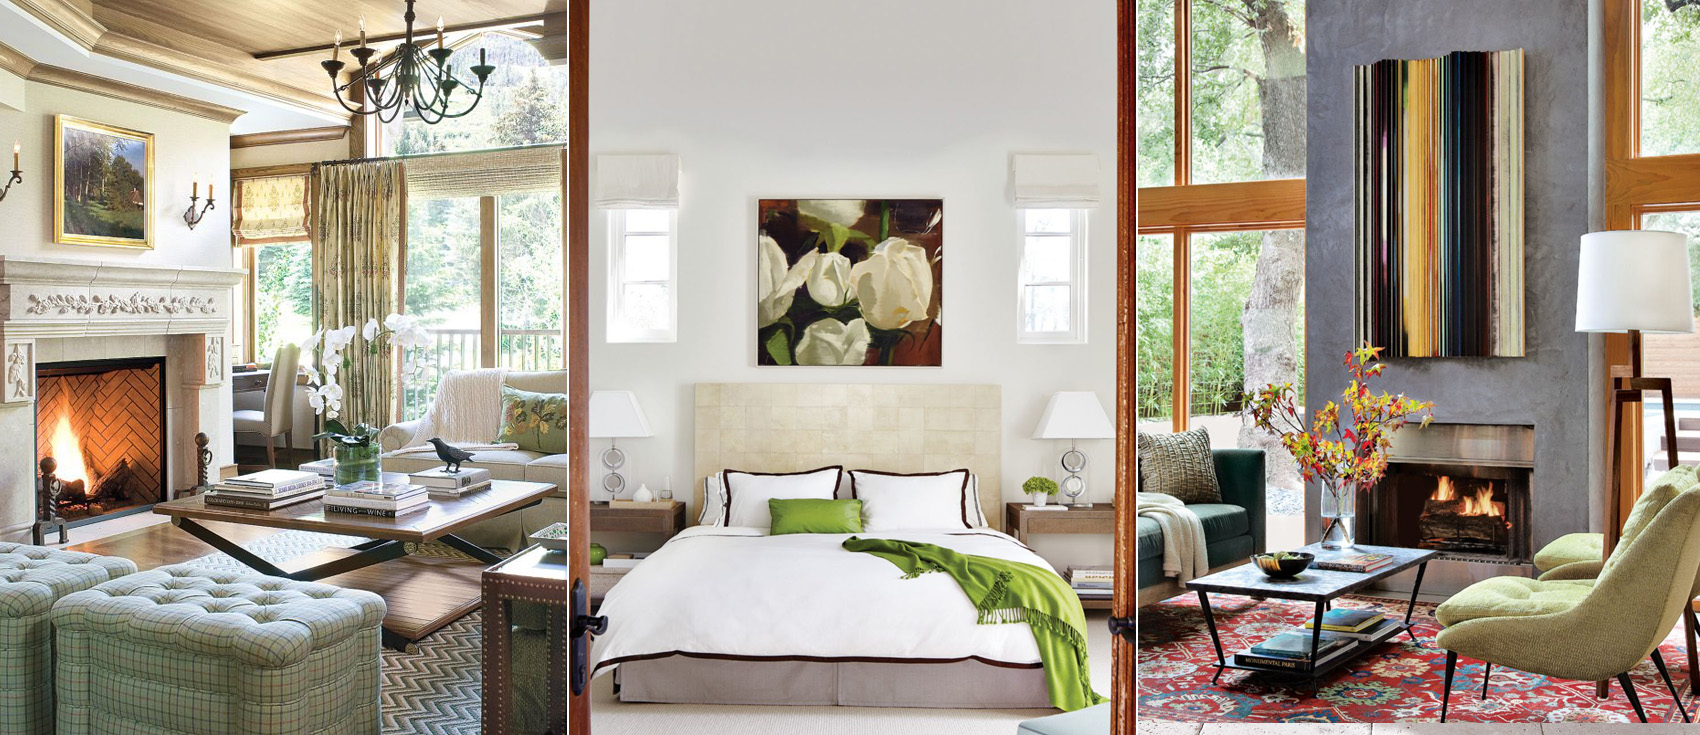 Green Decor   Decorating with Green